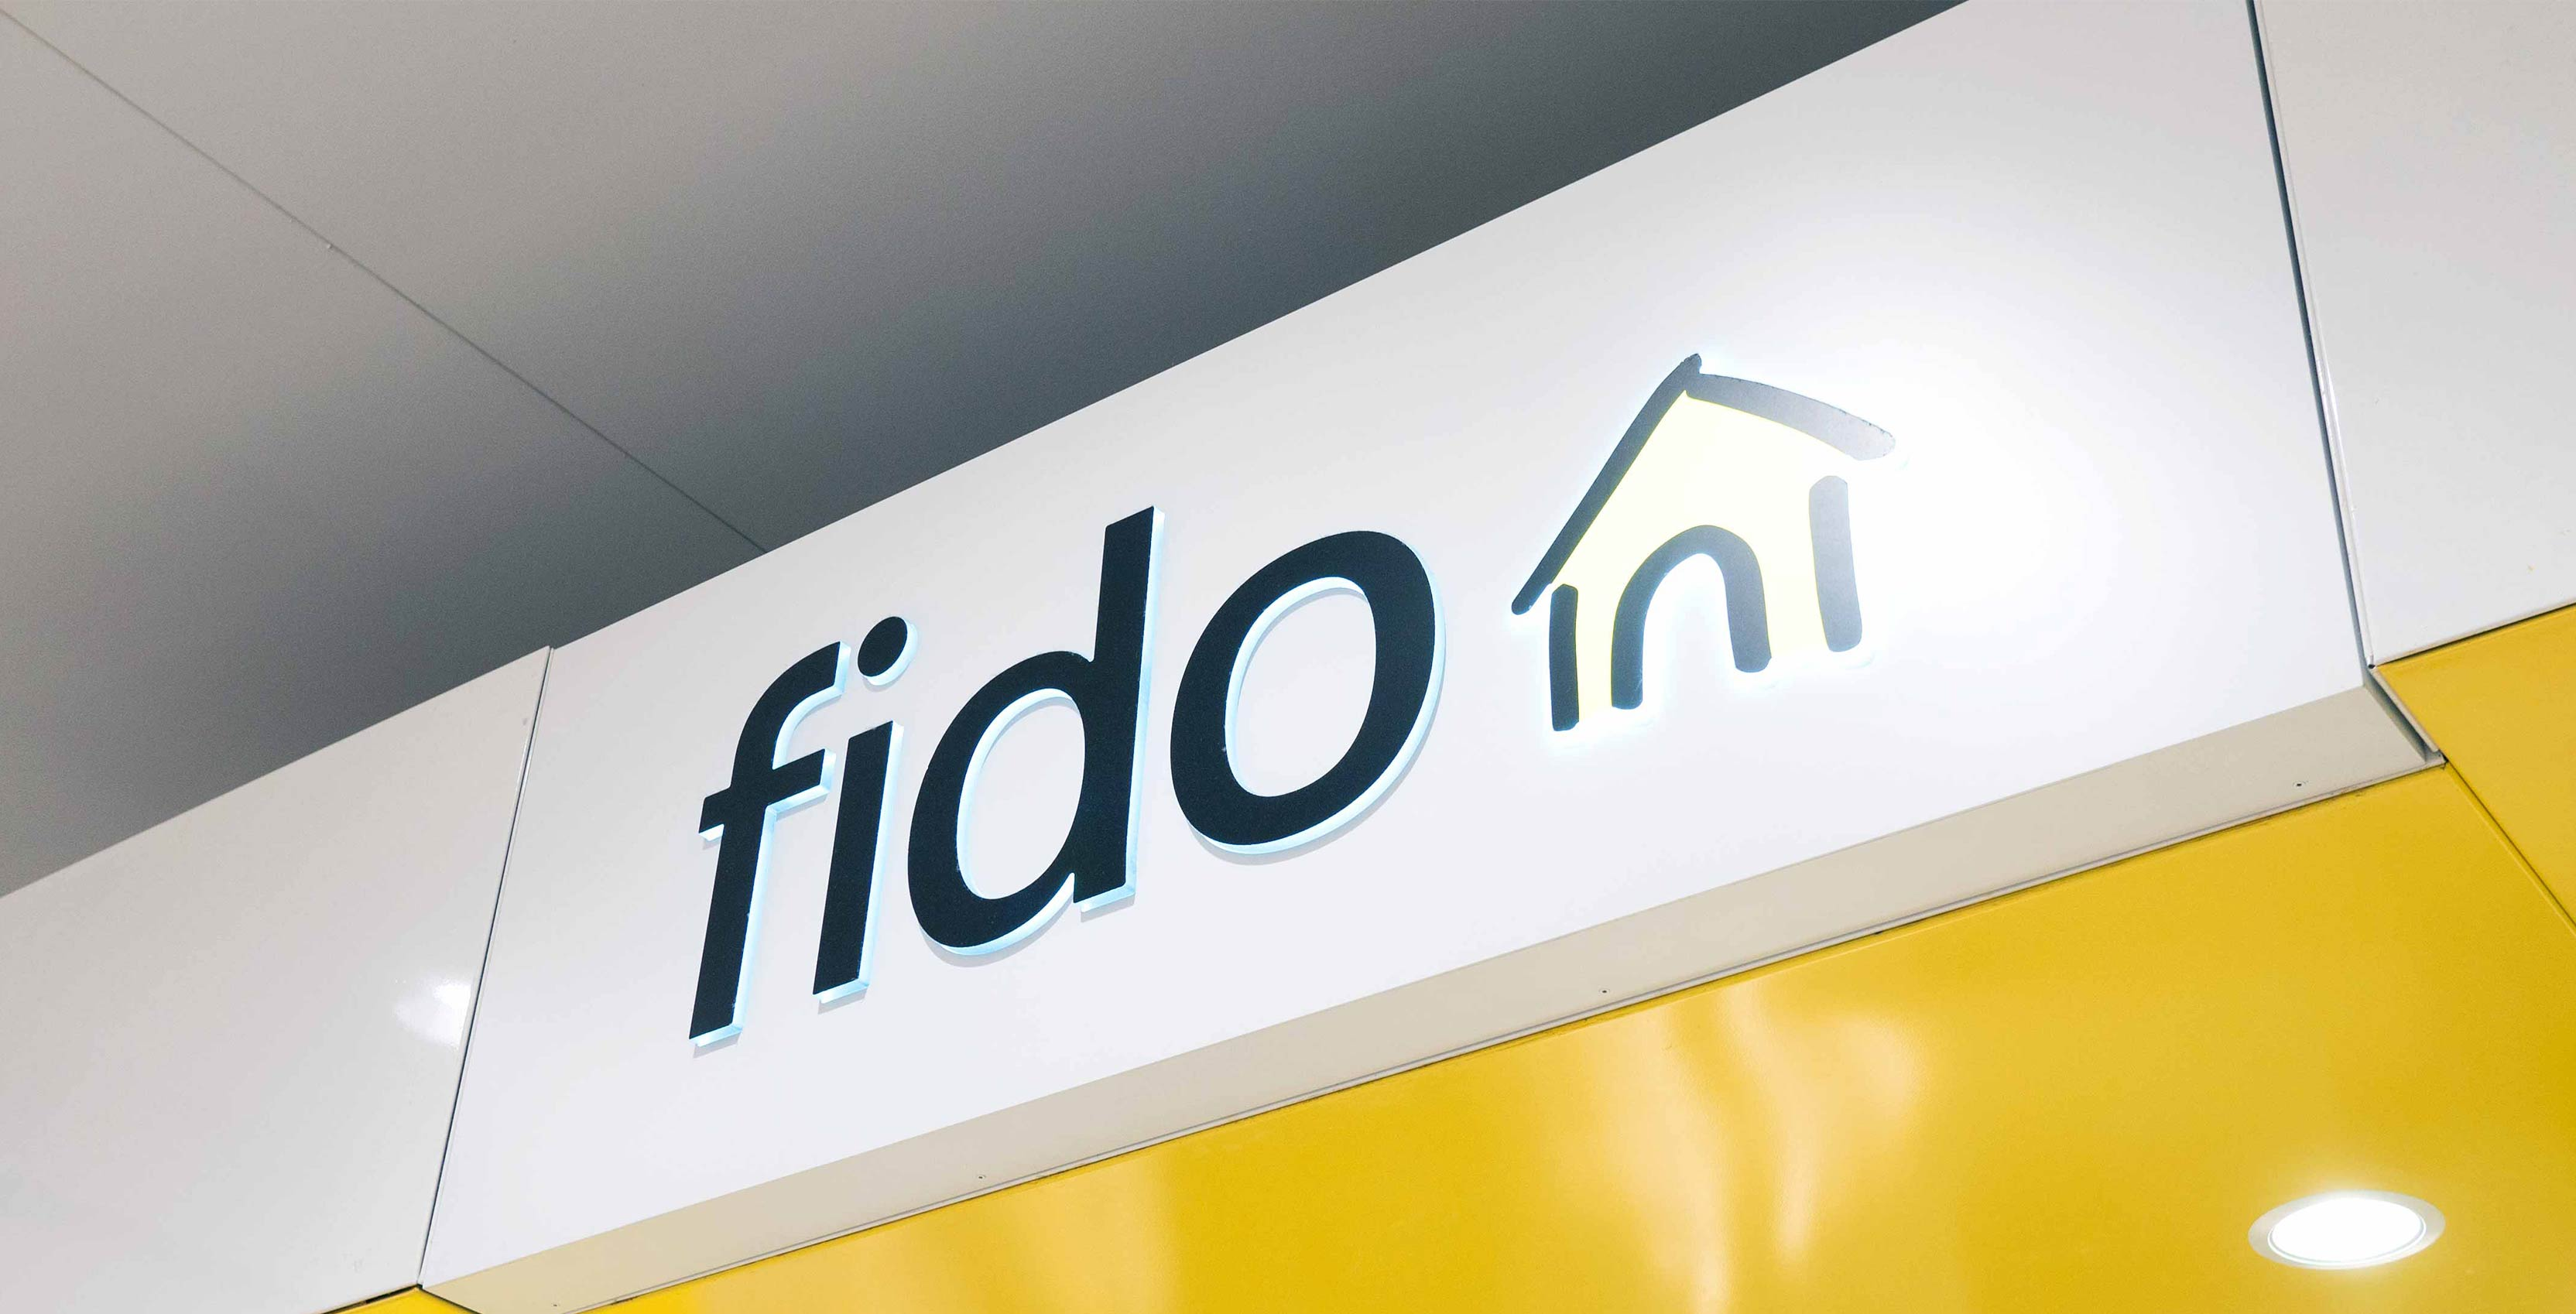 Fido offers 50% discount on Home Internet 75 to wireless